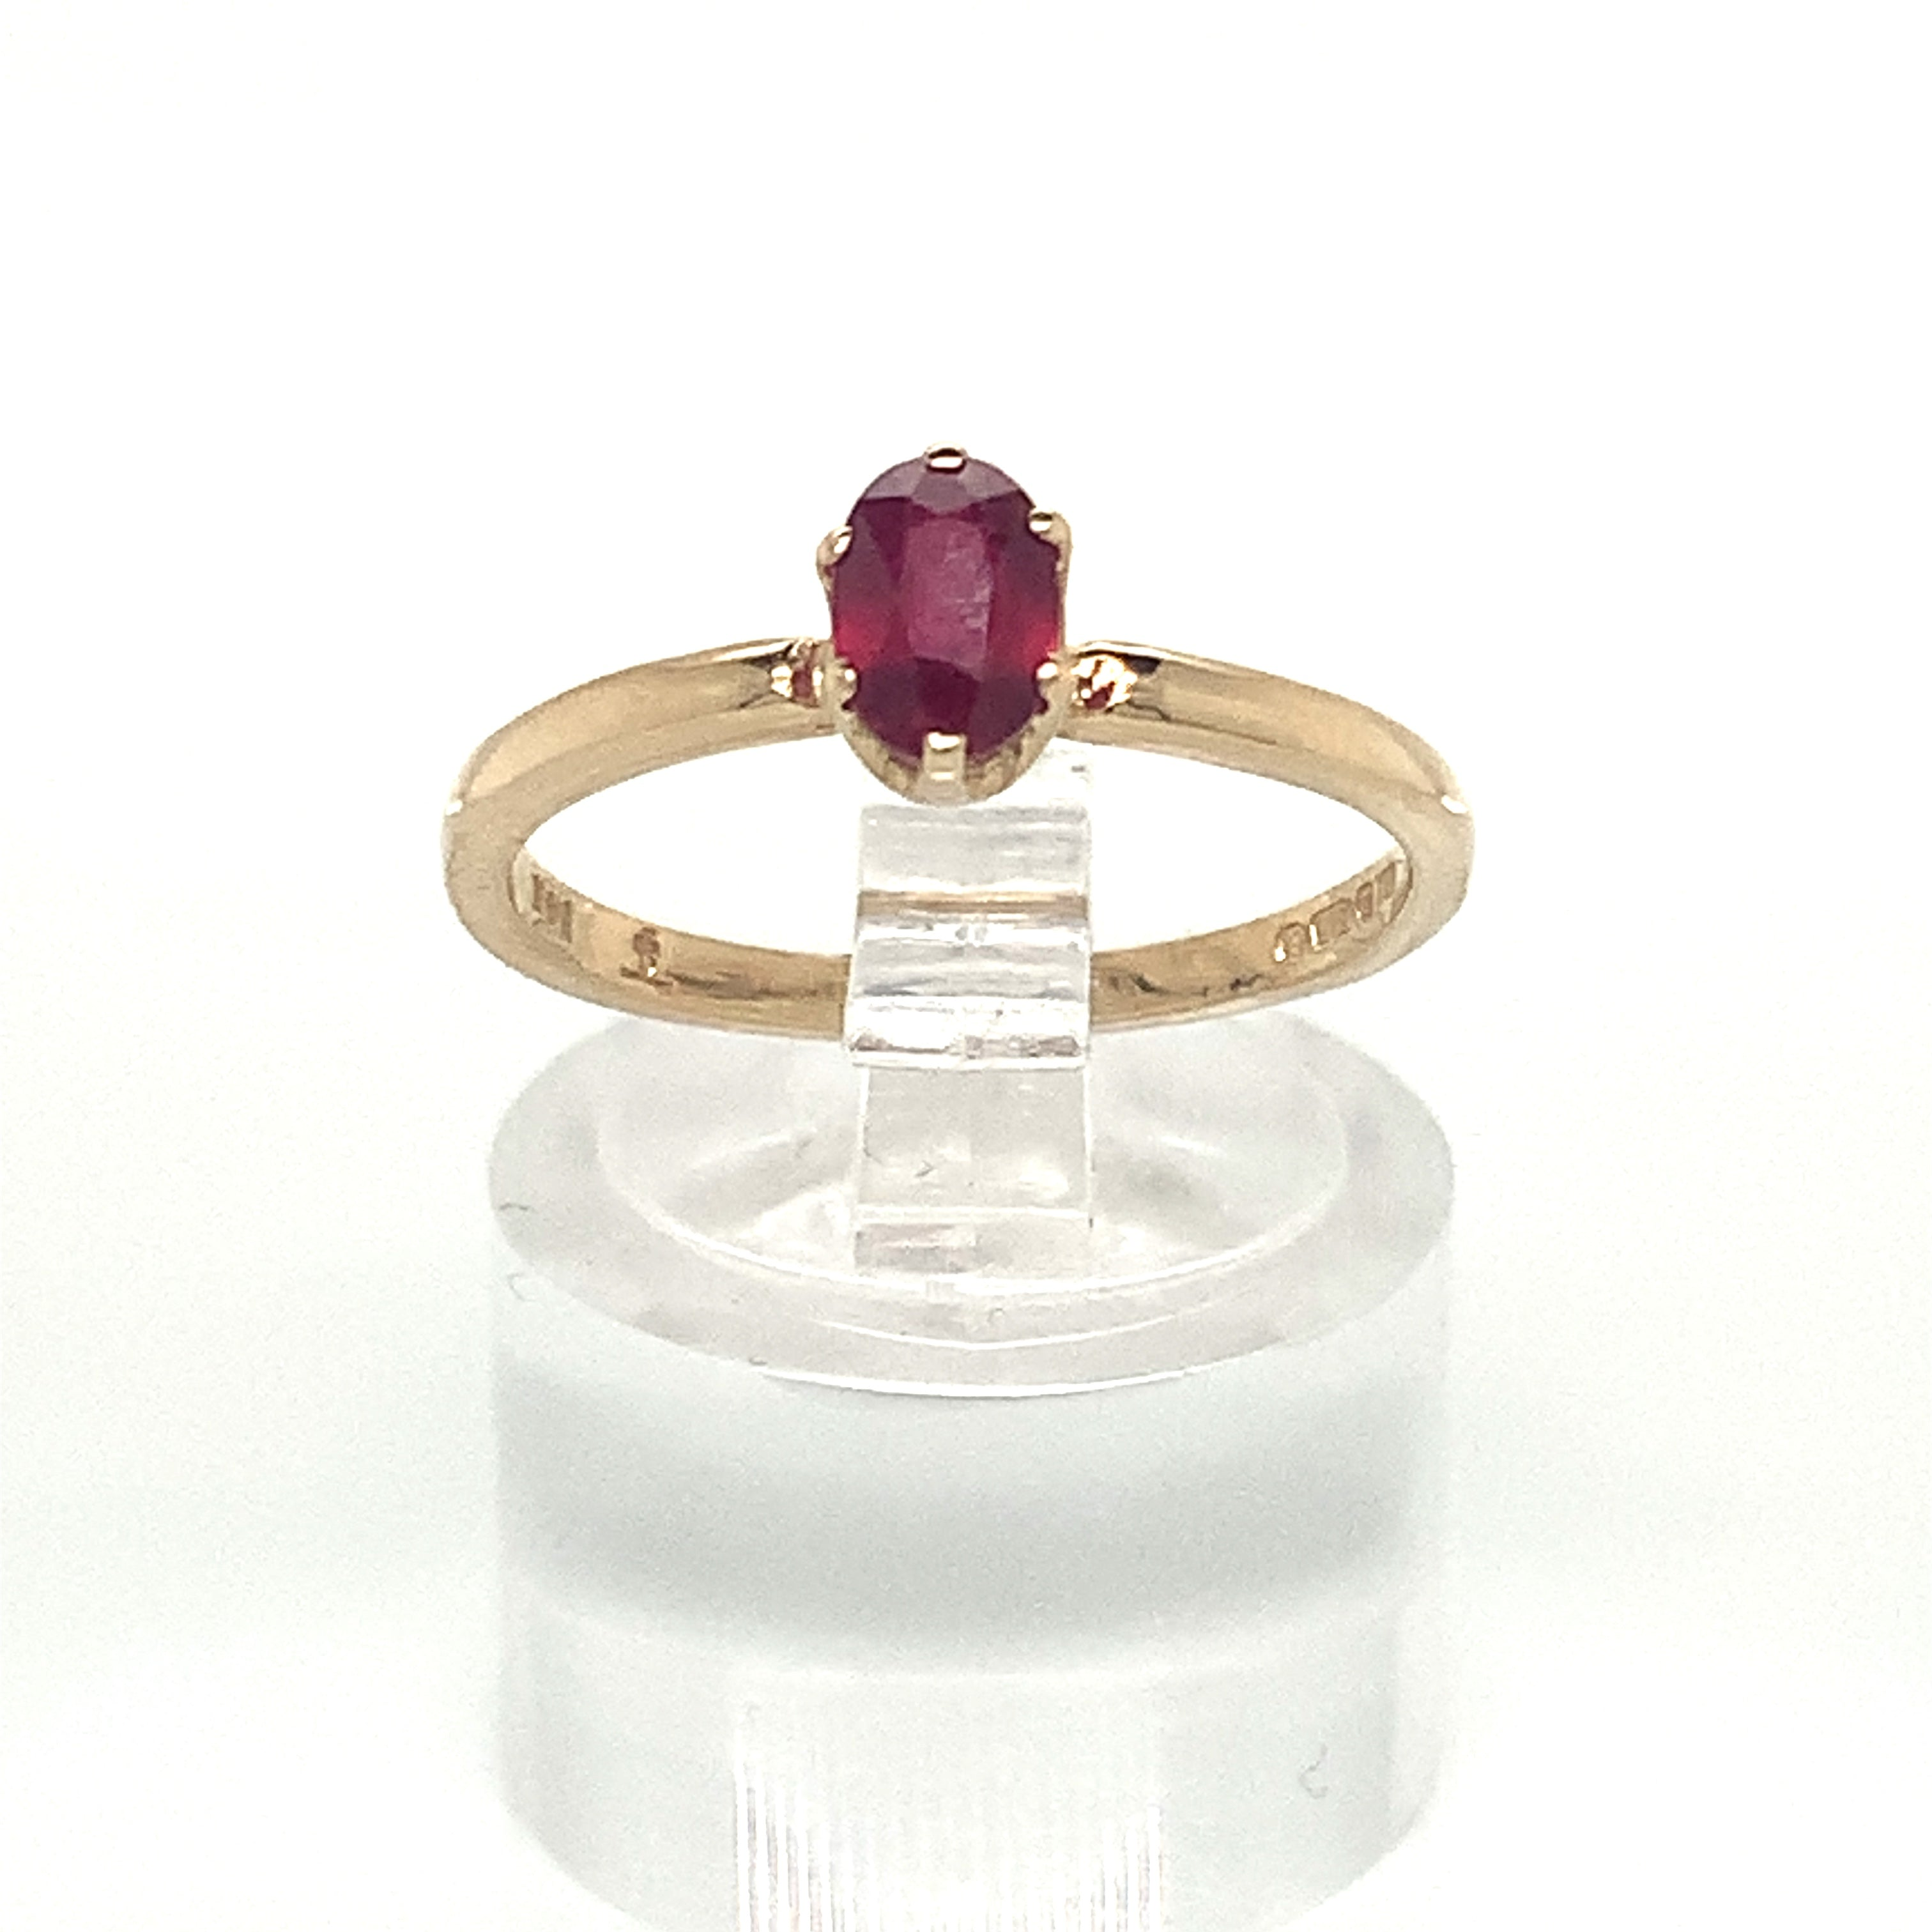 Oval Cut Ruby Solitaire Ring